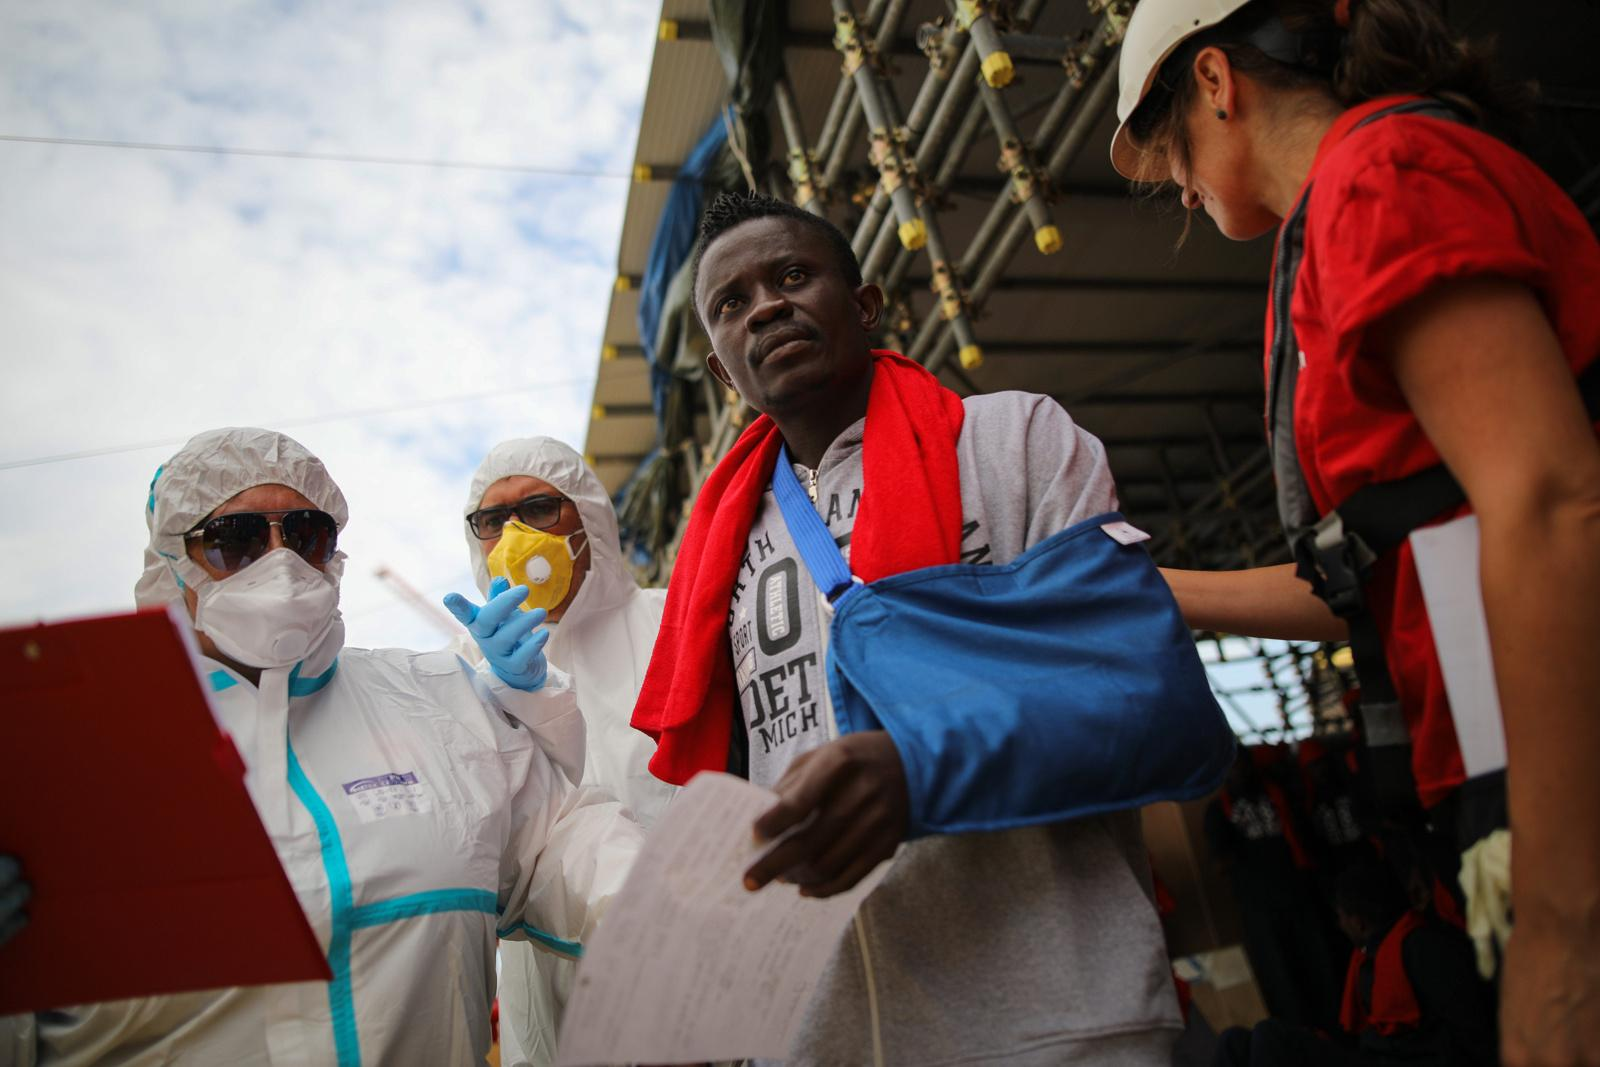 A medical contagion prevention team (left) and a doctor (right) bring a refugee from board of the rescue vessel 'VOS Hestia', in the port of Trapani, Italy, June 05, 2017. The Central Mediterranean route is the world's deadliest migration route. Of the estimated 3,080 people that have died or gone missing while trying to reach Europe by sea via the three Mediterranean routes until end of November 2017, over 94% of deaths have occurred from North Africa to Italy, according to UNHCR. Over 117,000 refugees and migrants arrived in Italy by sea in 2017, about 32% less compared to 2016.